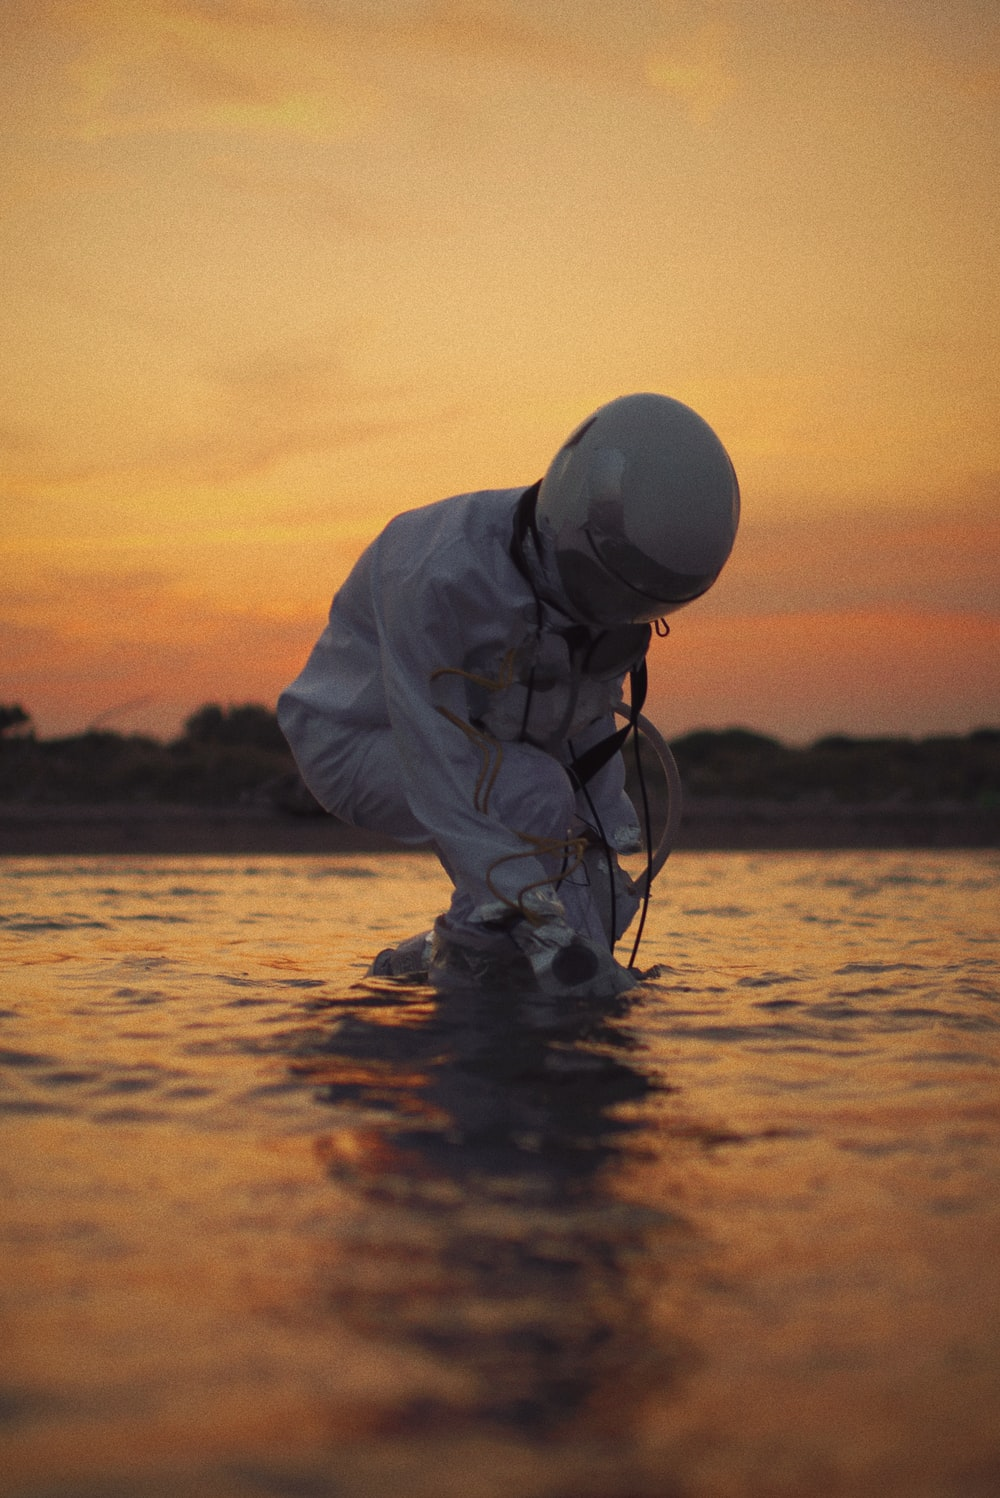 man in white dress shirt and black pants fishing on sea during sunset